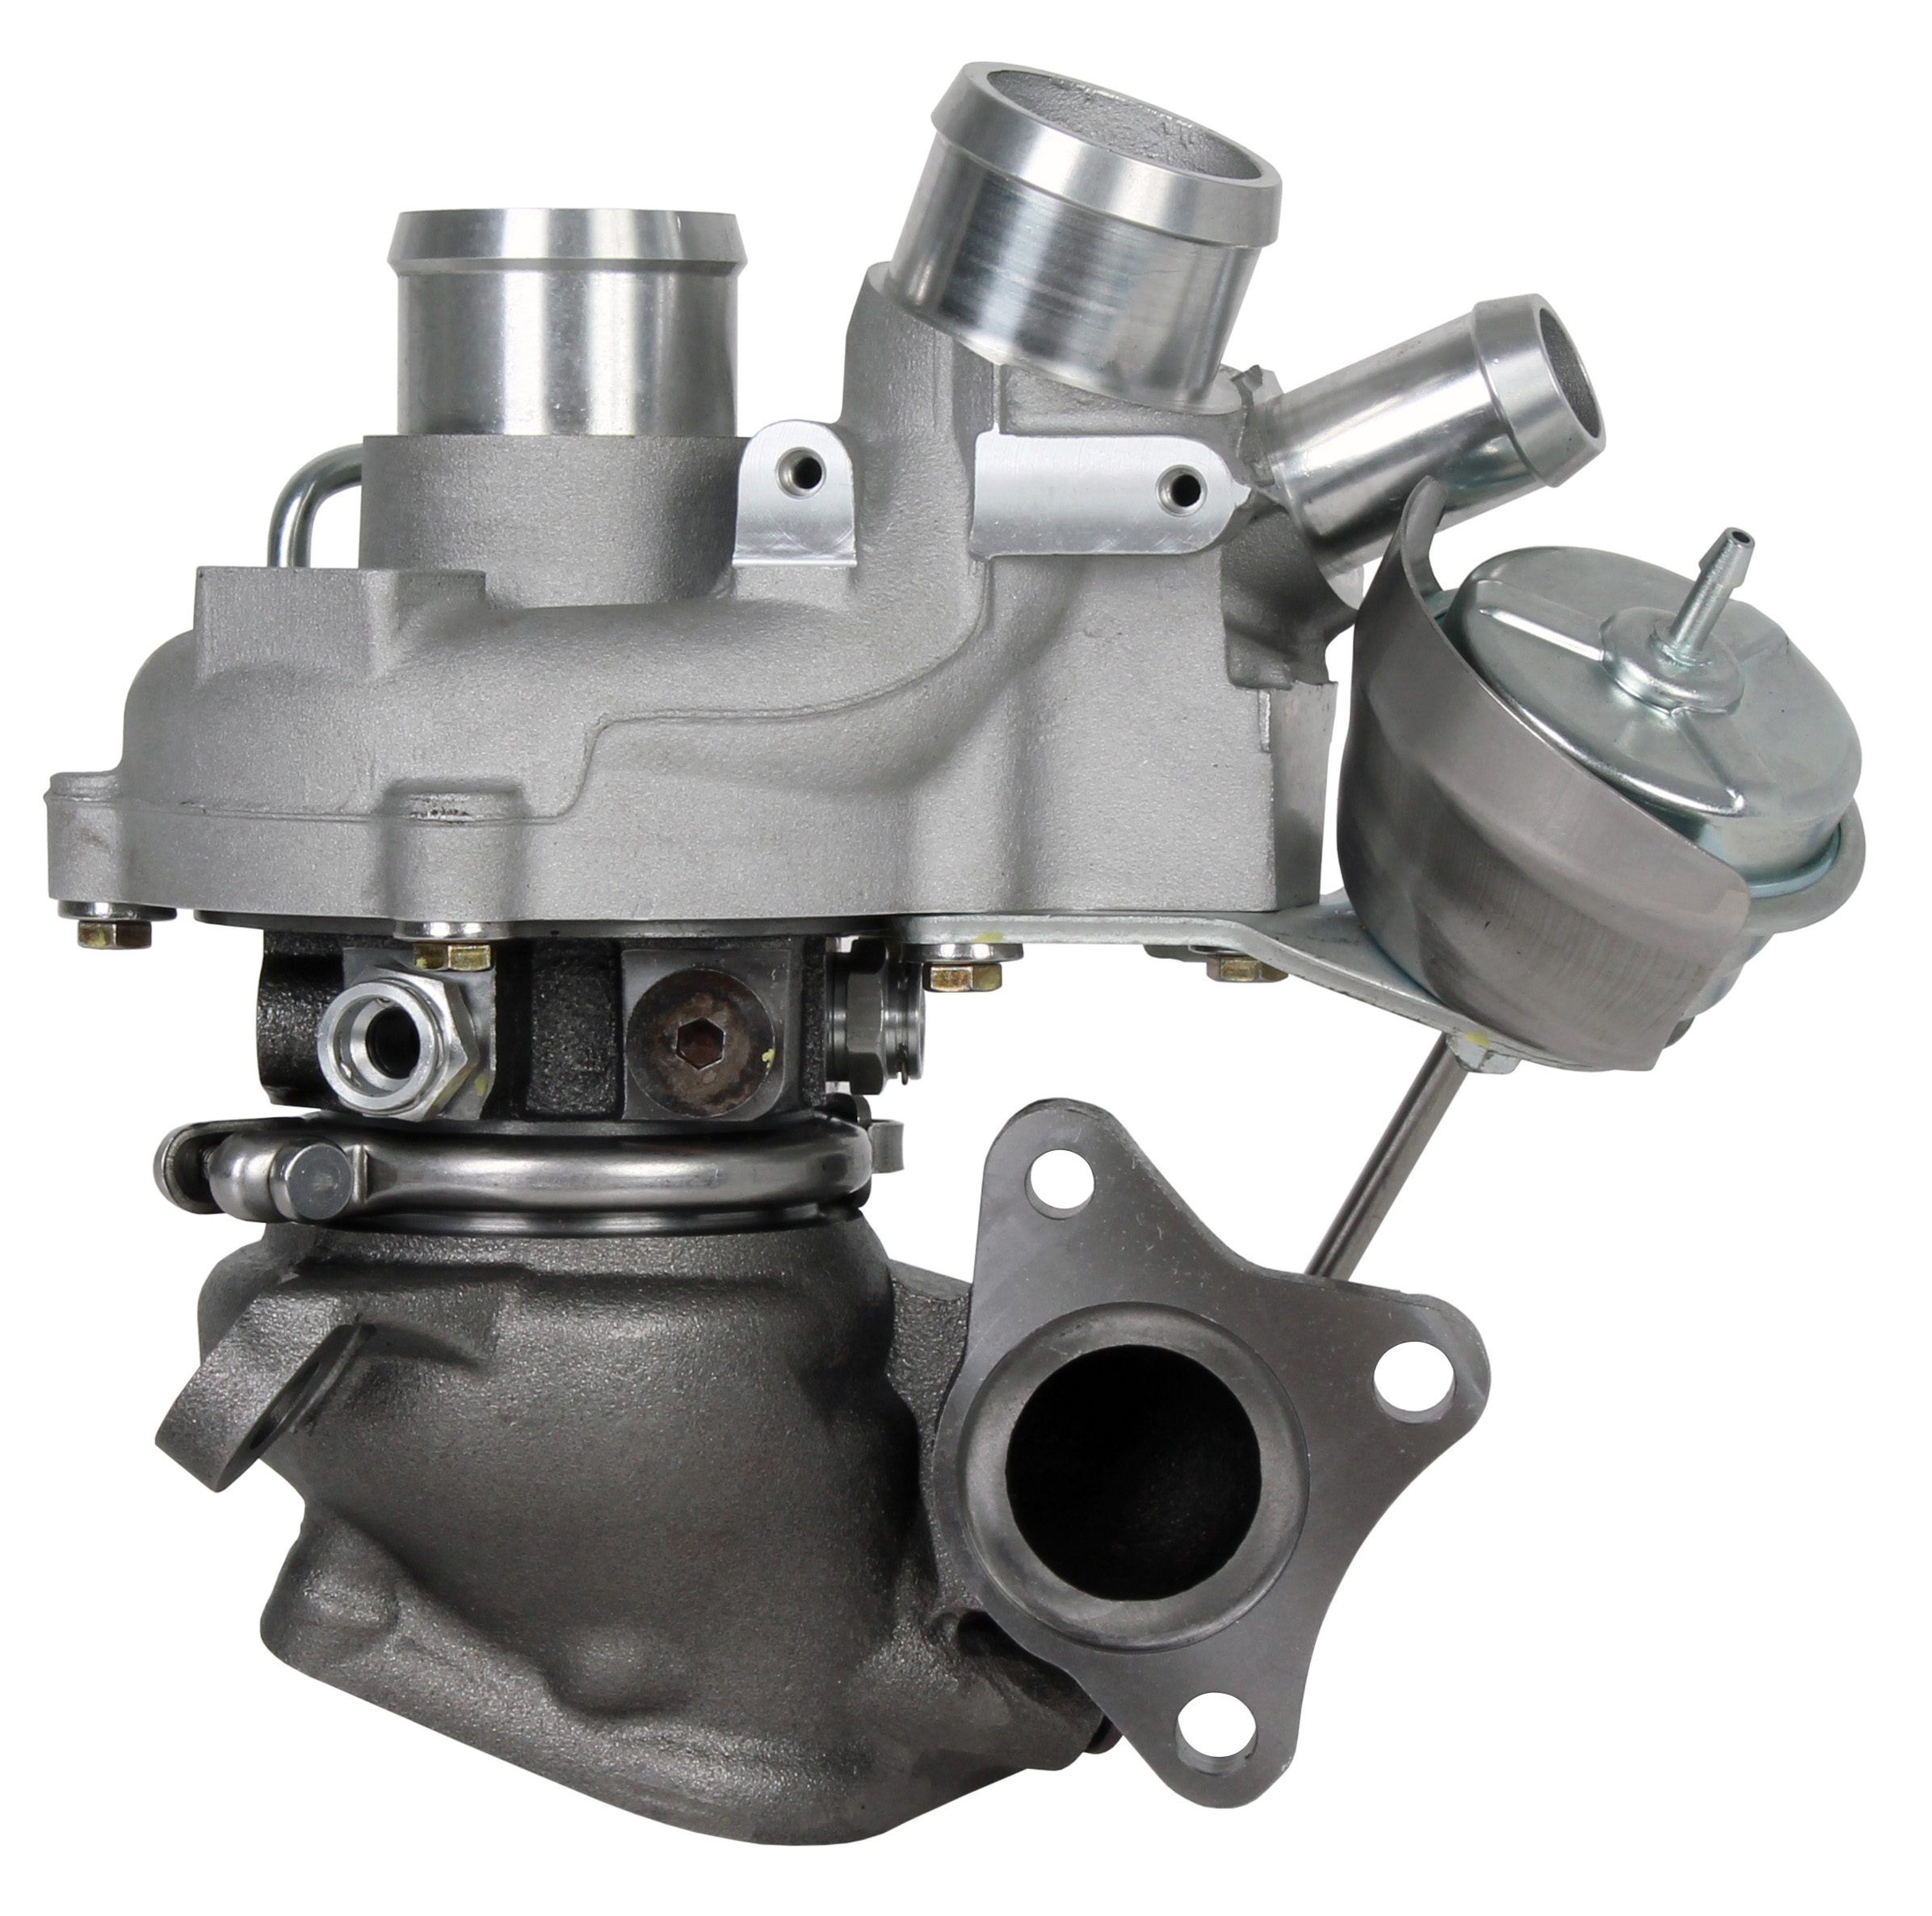 Ford 2 3 Liter Turbo: Ford 3.5L EcoBoost Turbocharger